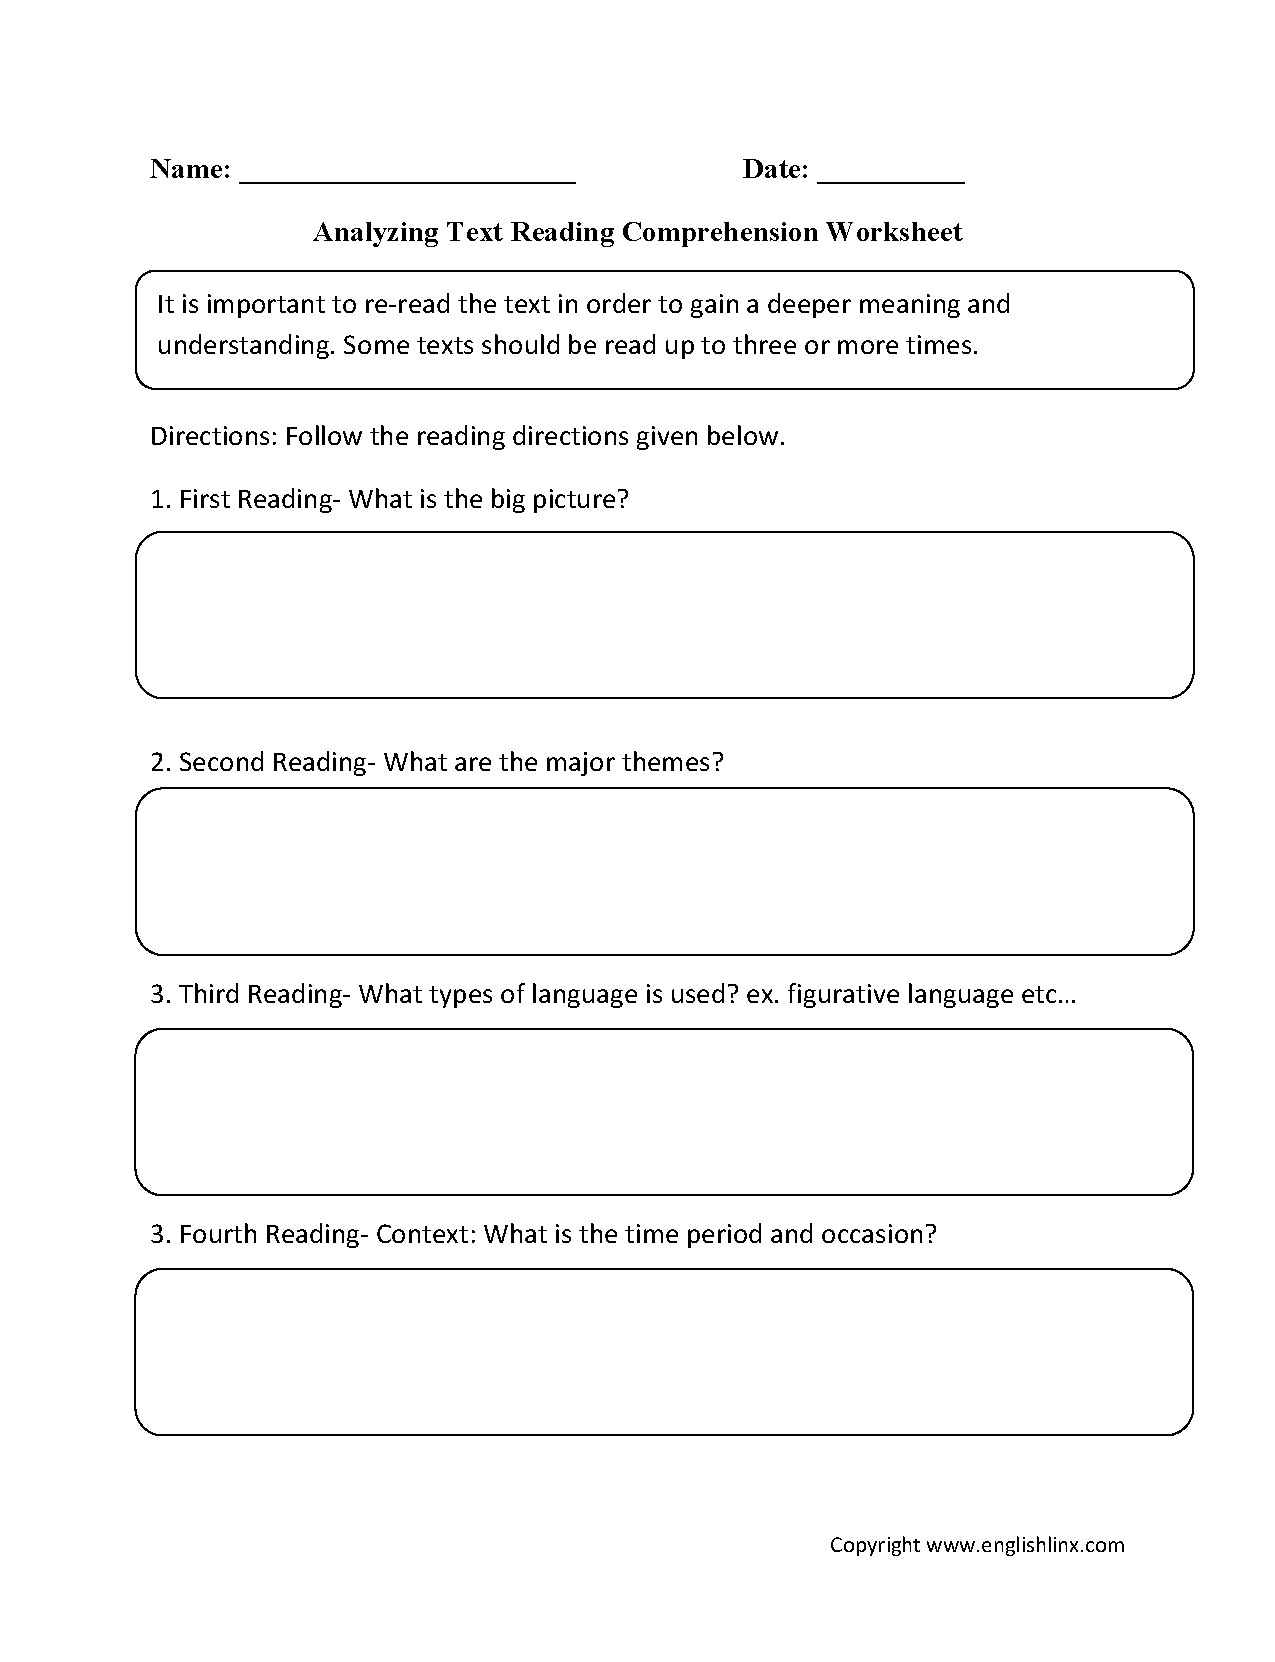 worksheet Reading Comprehension Worksheet 2nd Grade englishlinx com reading comprehension worksheets worksheets